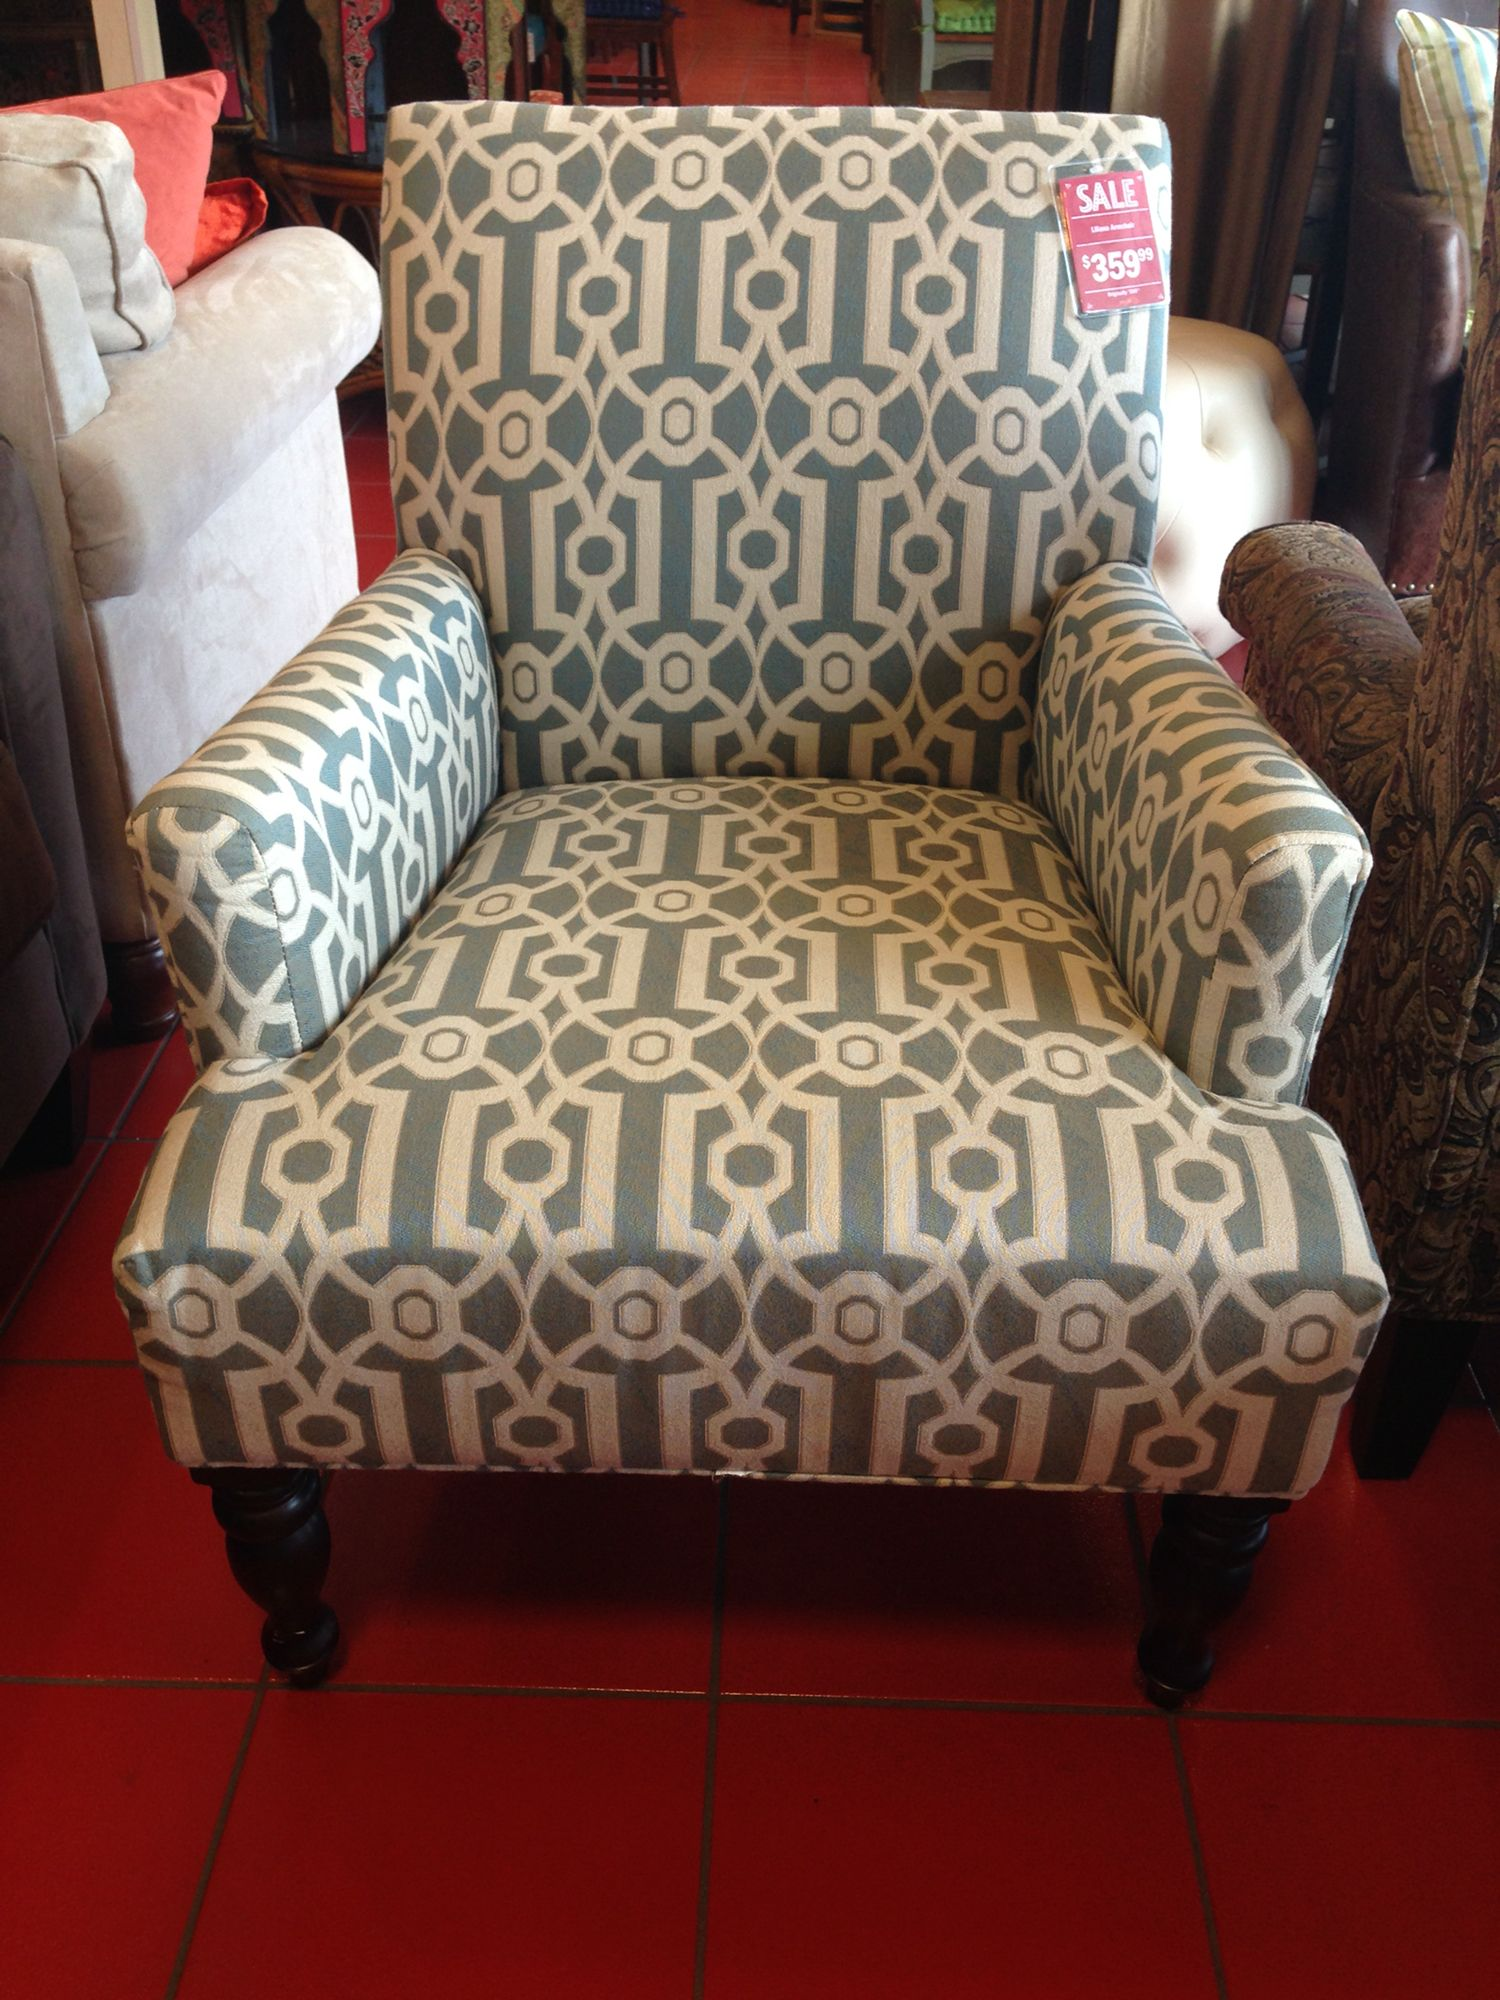 Pier One Imports (With images)   Decor, Home decor, Furniture